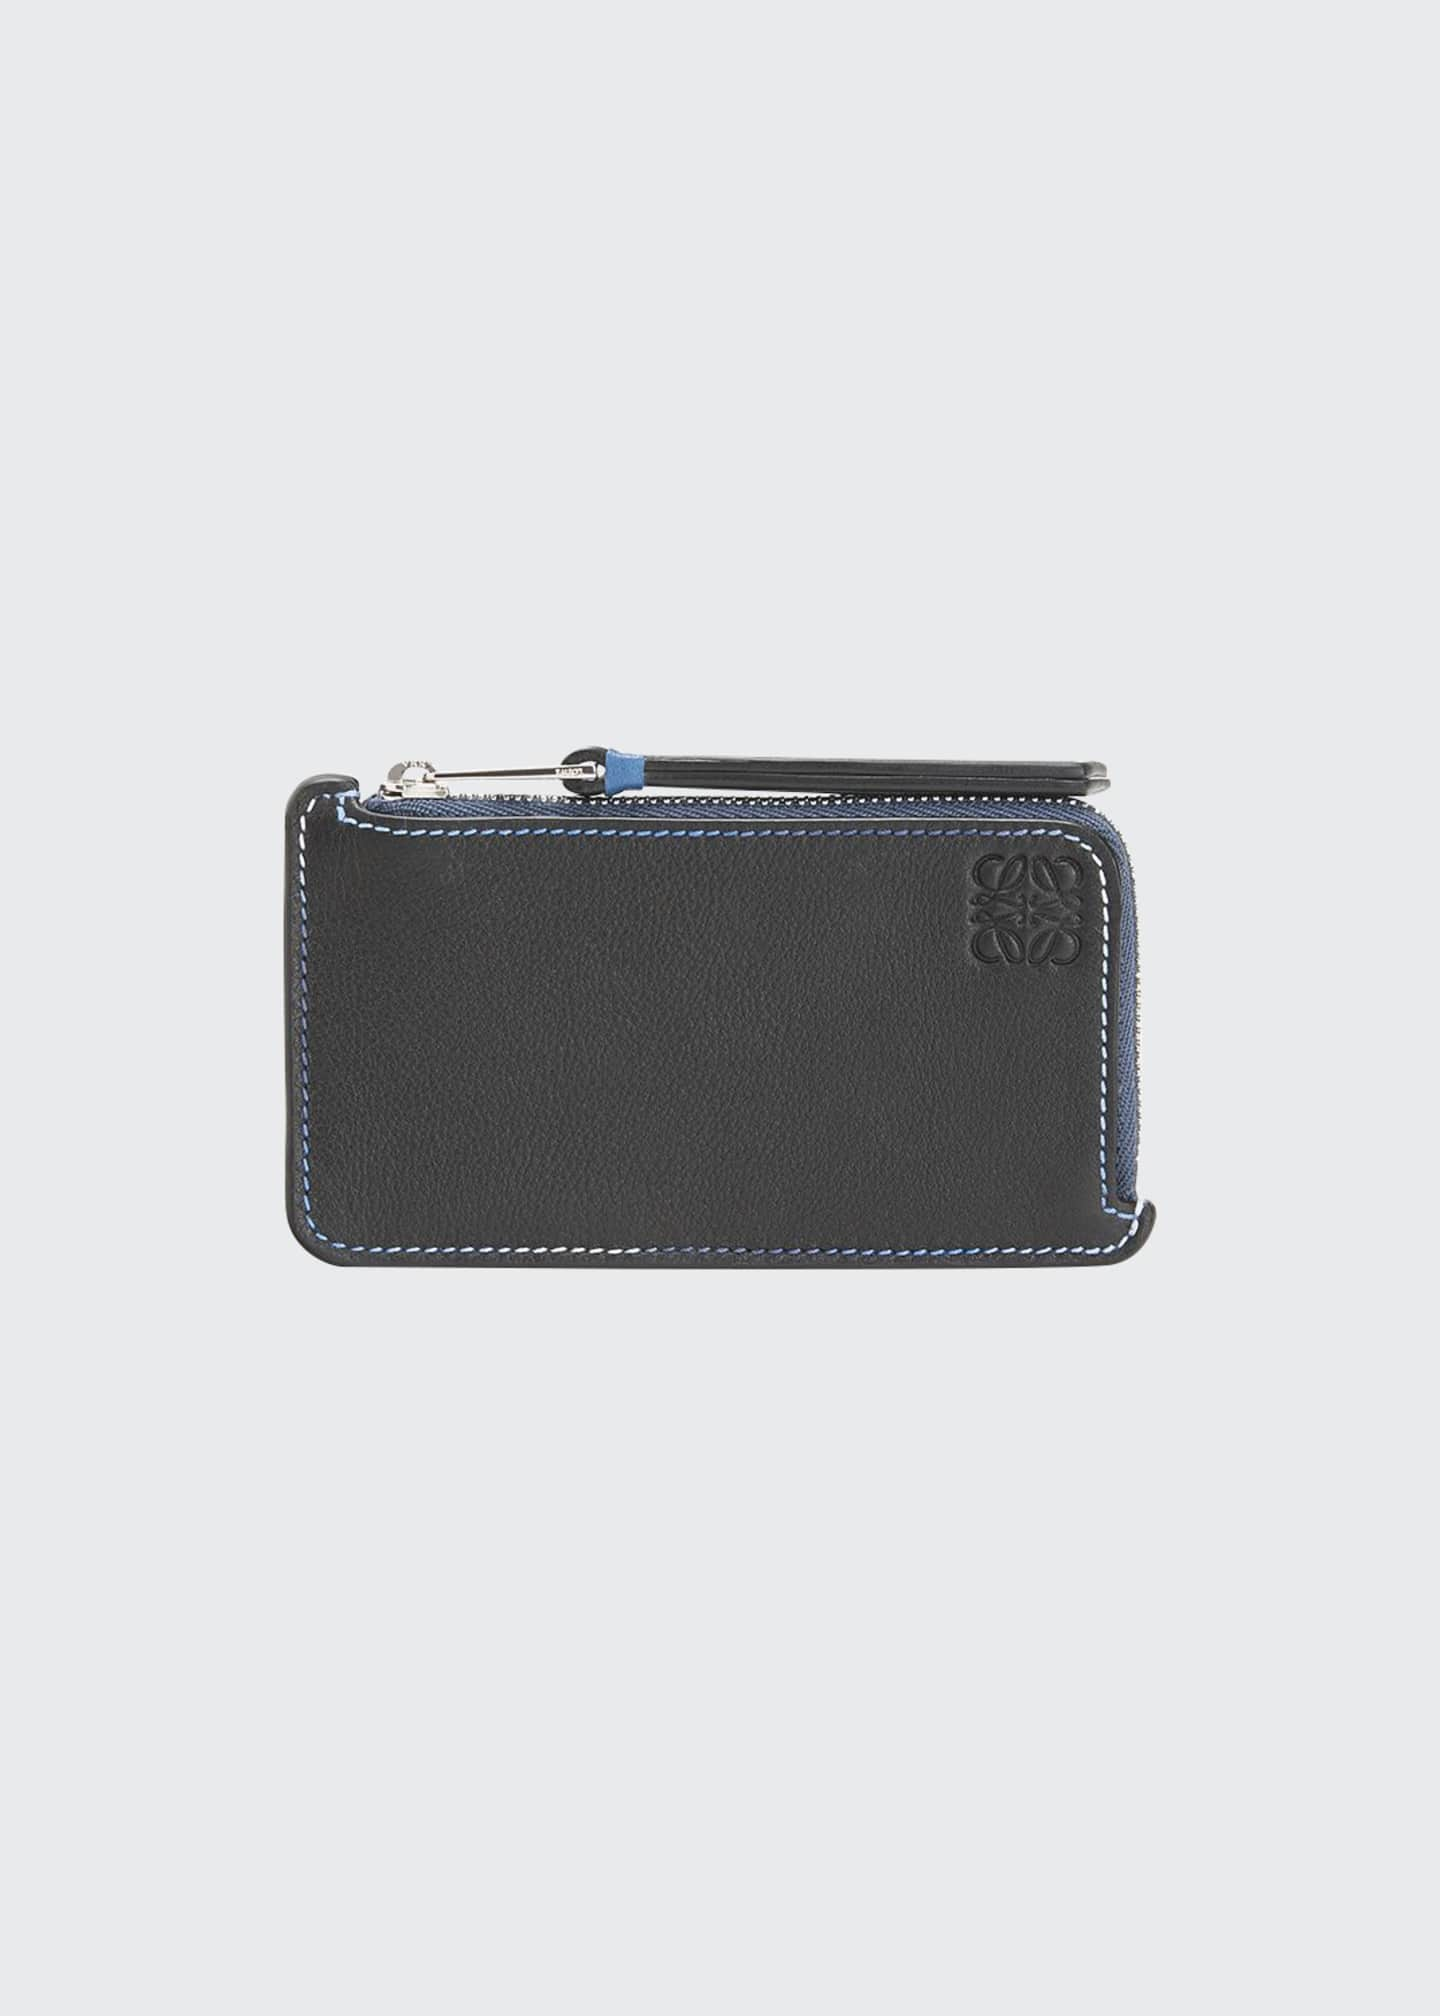 Loewe Men's Rainbow Leather Coin Card Holder